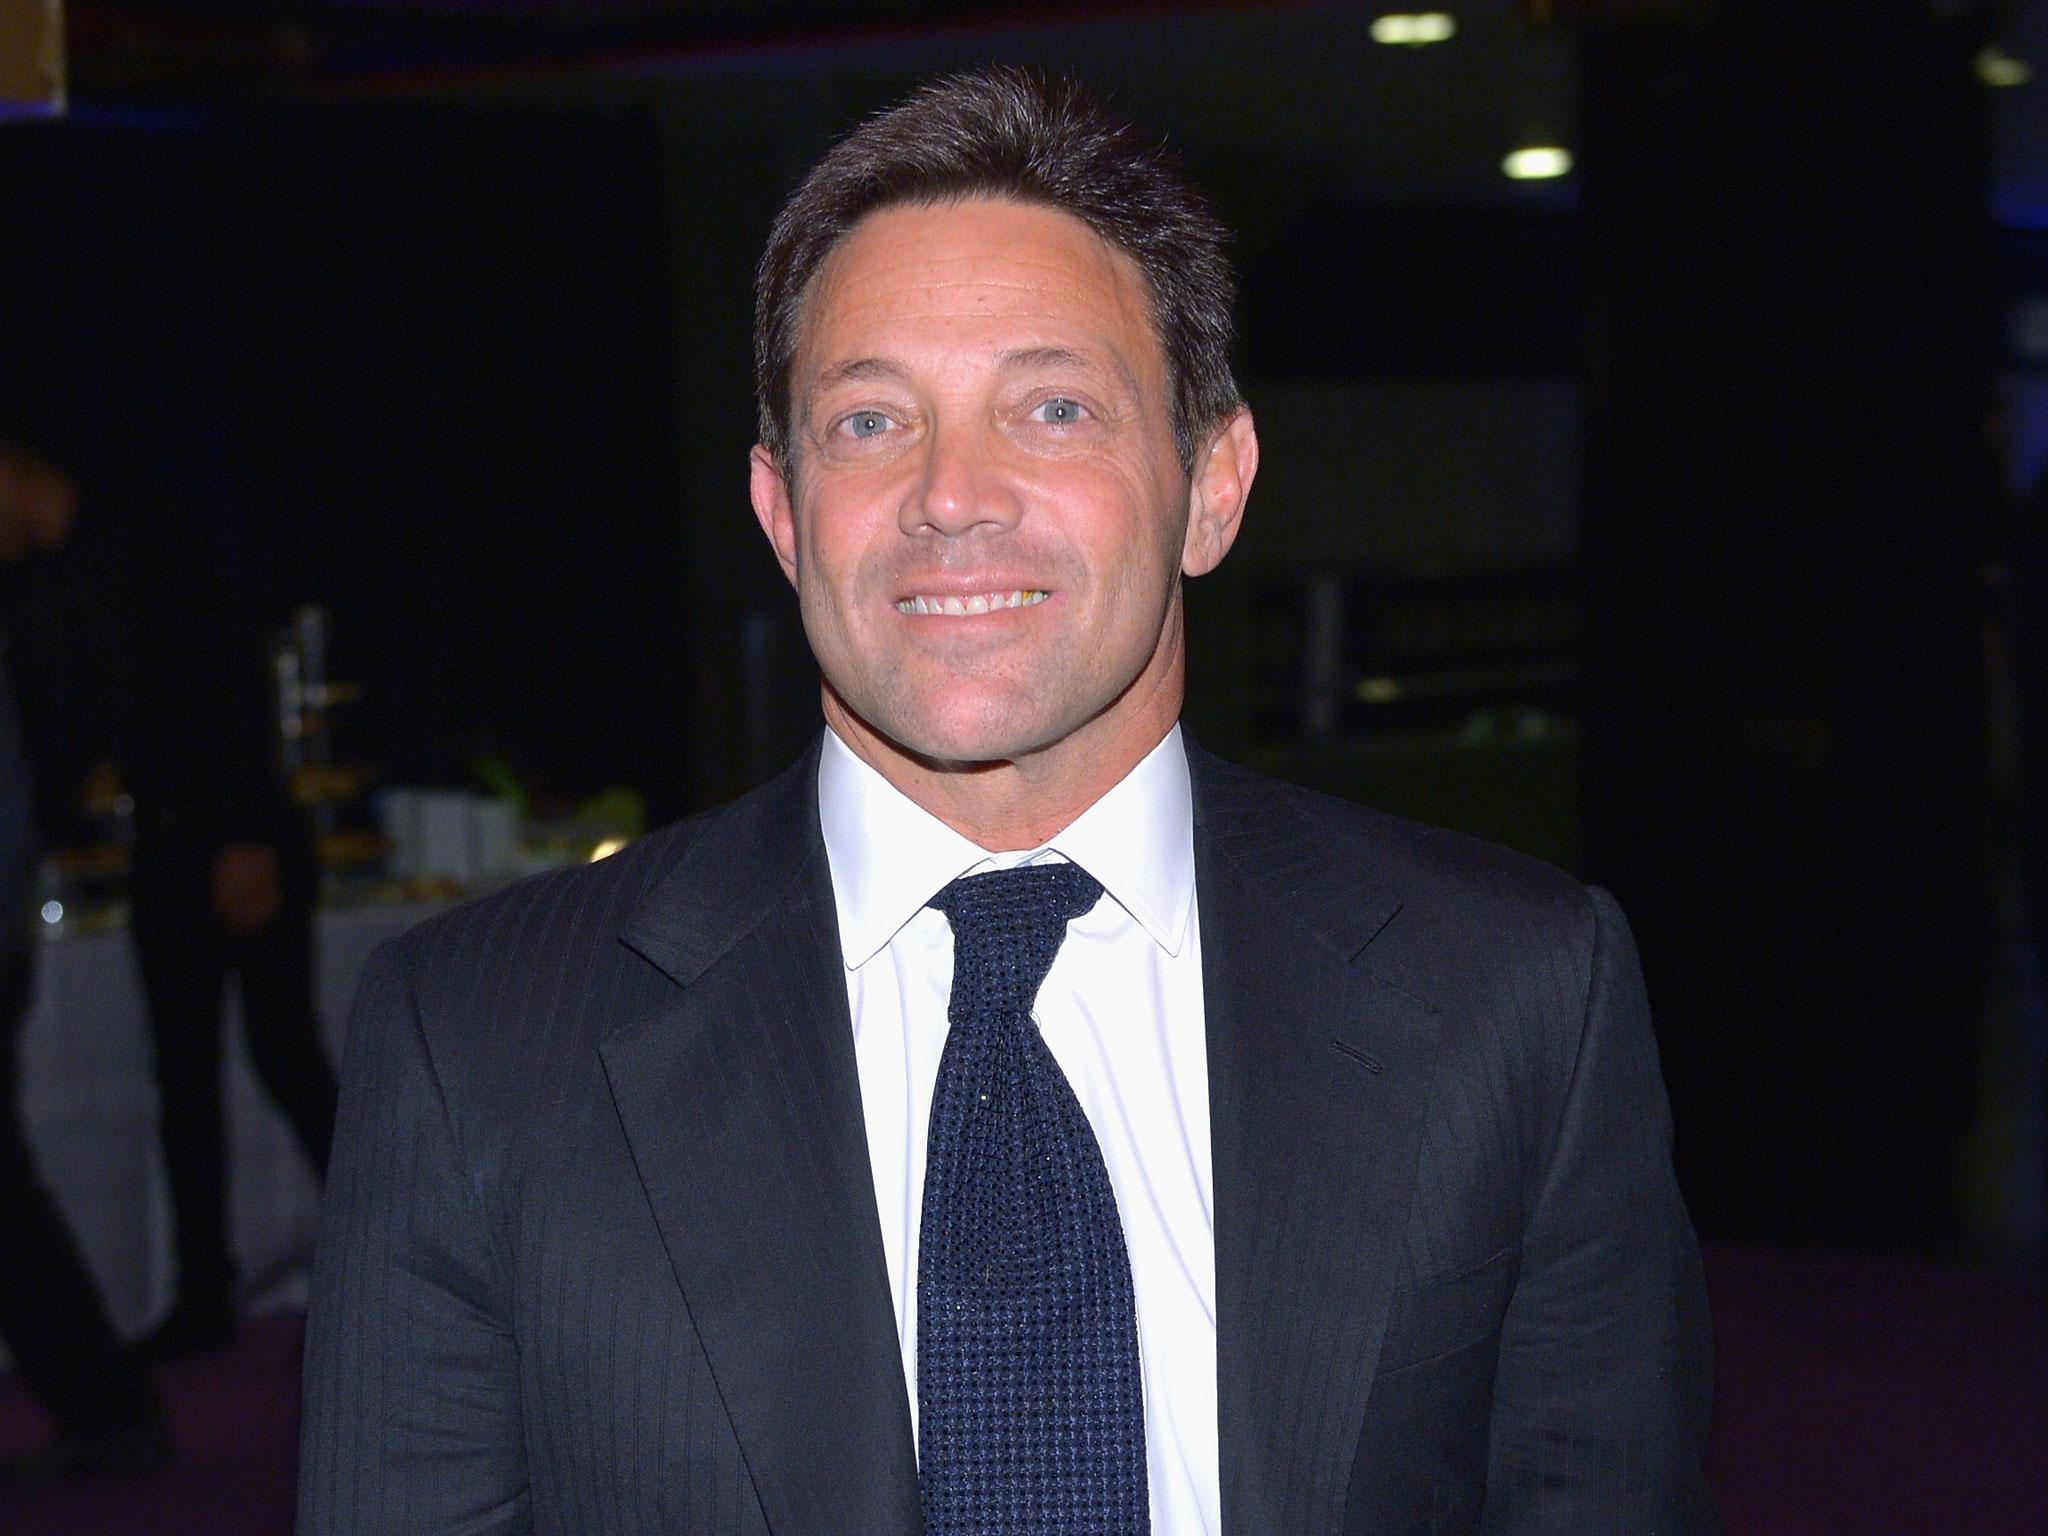 Jordan Belfort The Real Wolf Of Wall Street The Independent